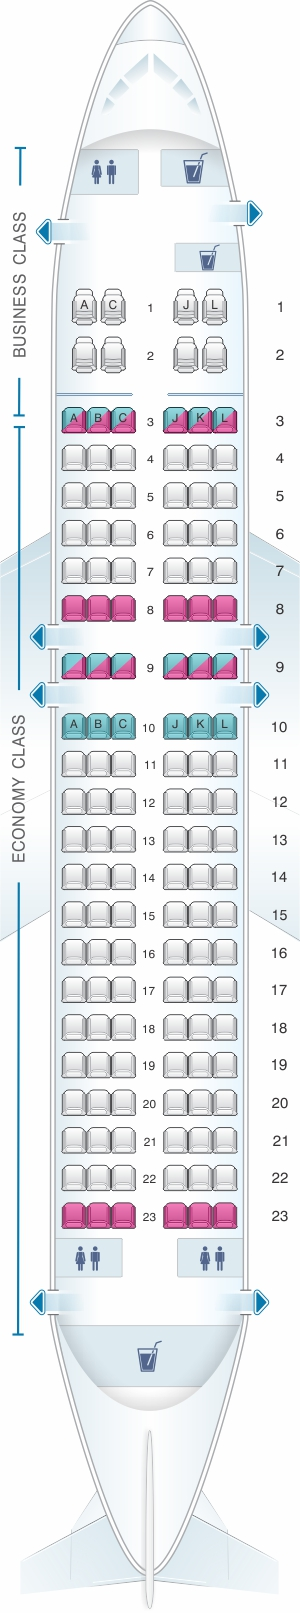 Seat map for SpiceJet Boeing B737 700 config.2